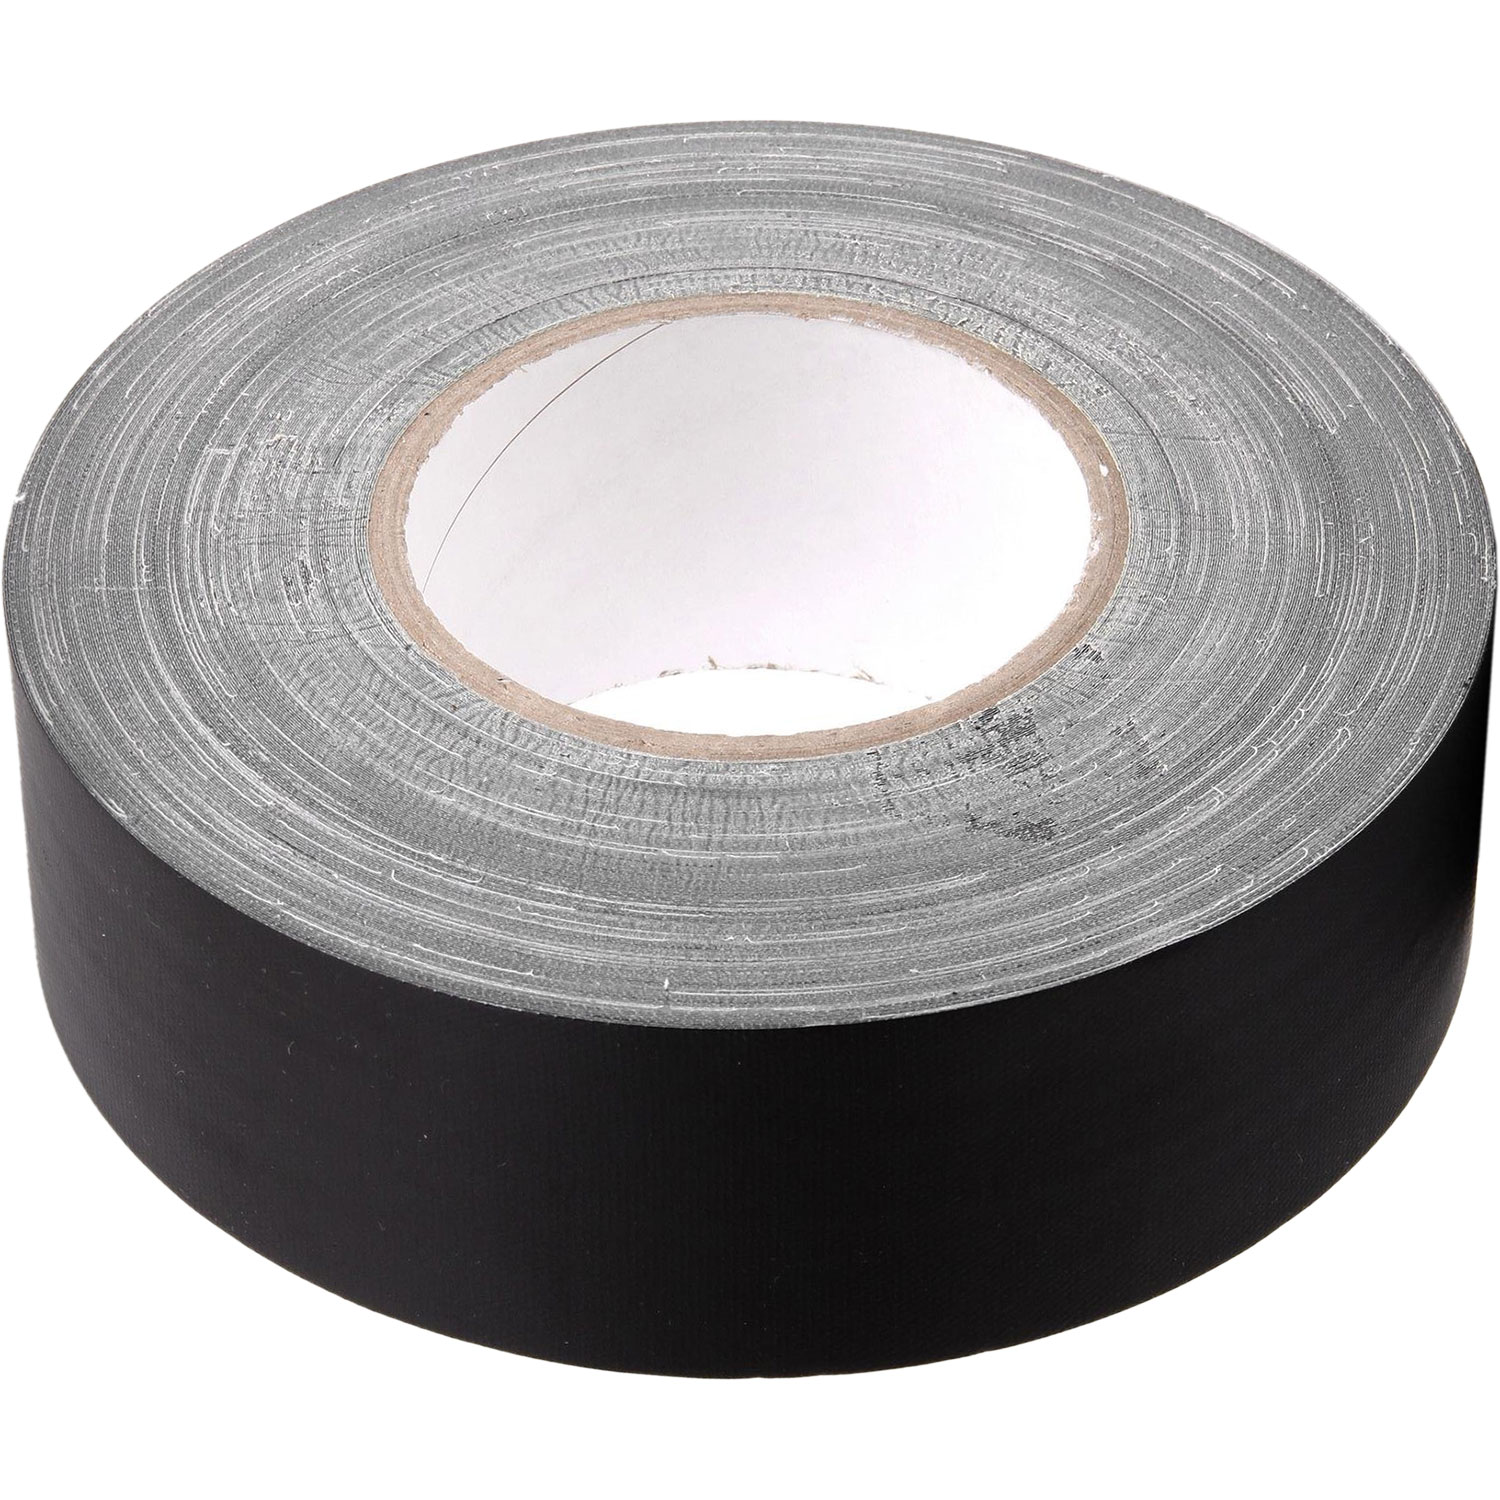 "Hosa 2"" Black Gaffer Tape (60 Yards)"